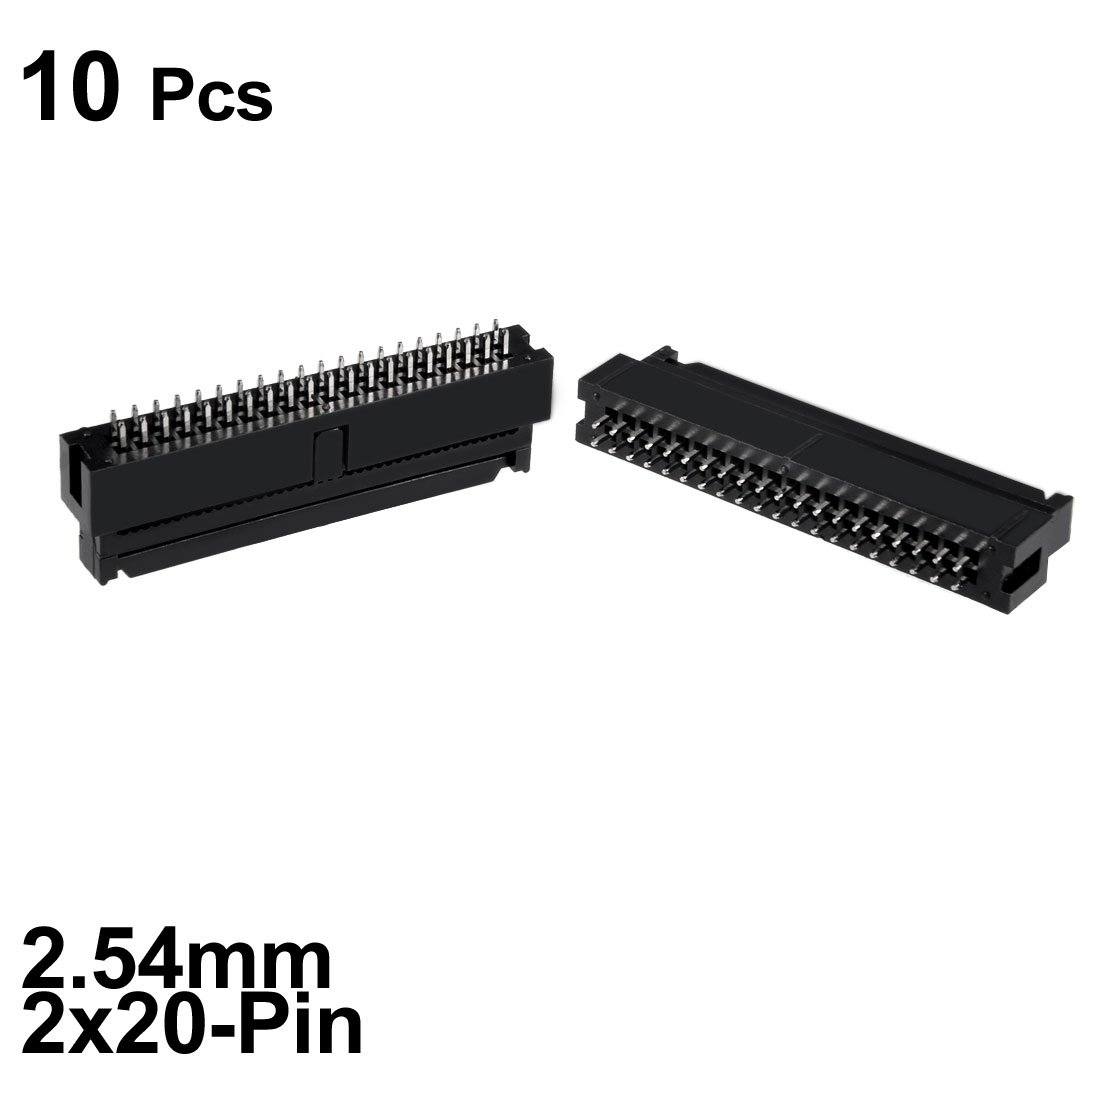 uxcell 10Pcs 2.54mm Pitch 2x20-Pin Double Row Straight Connector Female Pin Header Strip PCB Board Socket